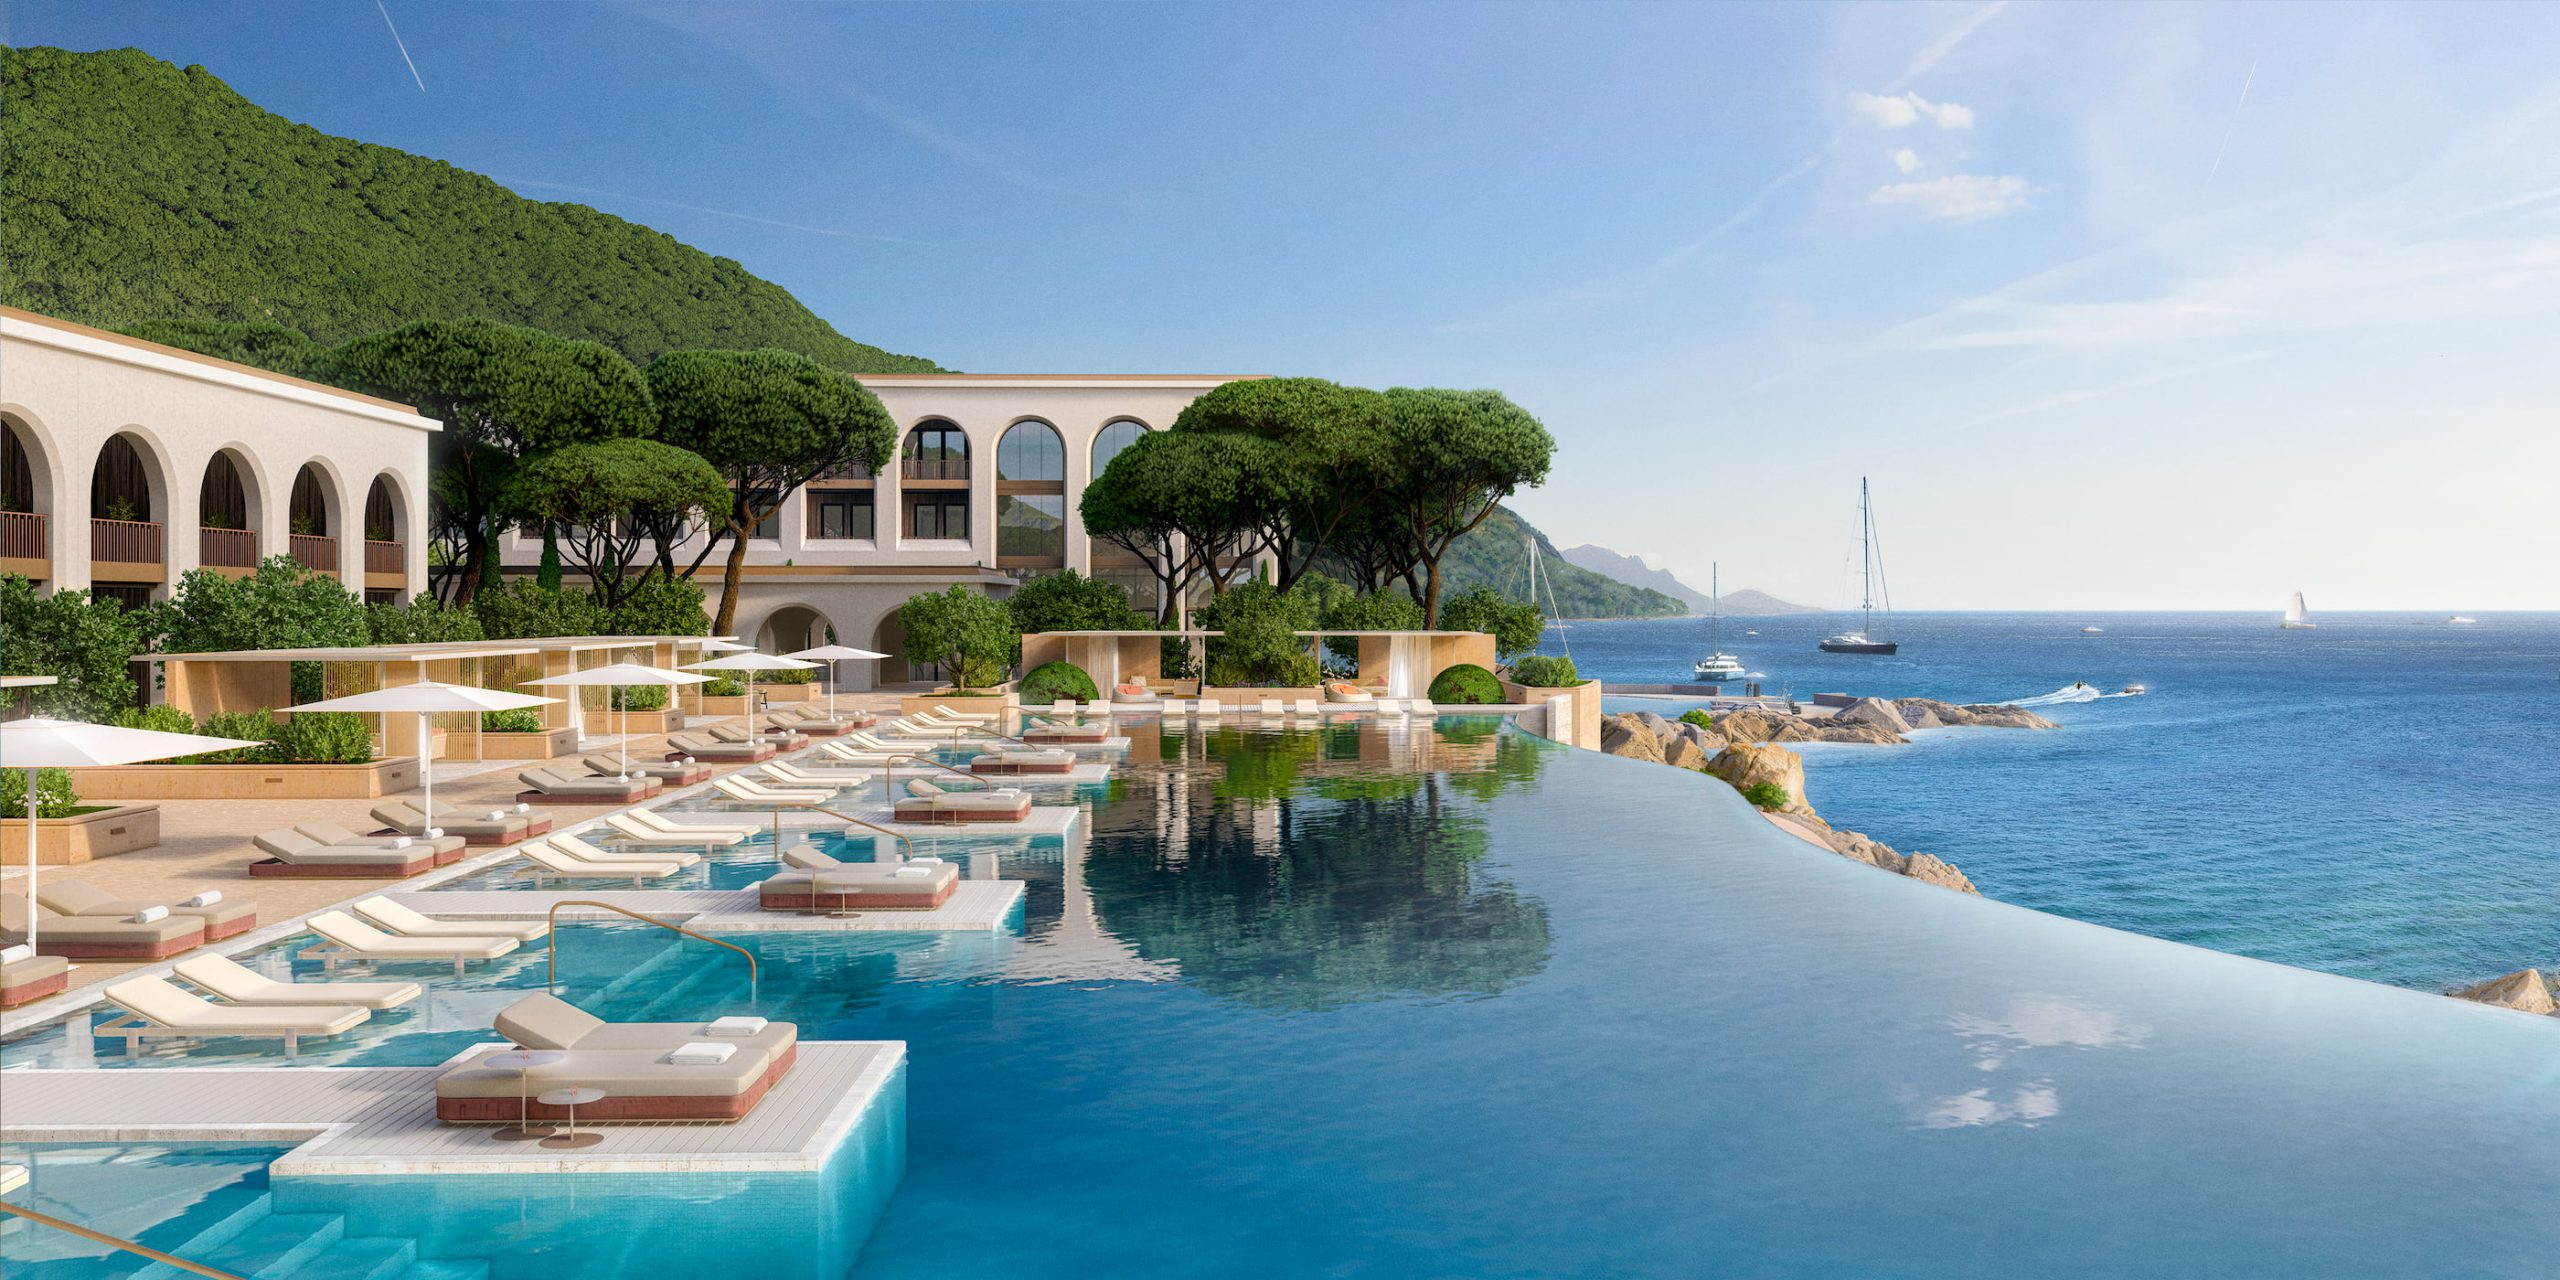 Hotel pool and coastline, Hotel Le Mas. Rendered in Lumion by Ten Over Media.